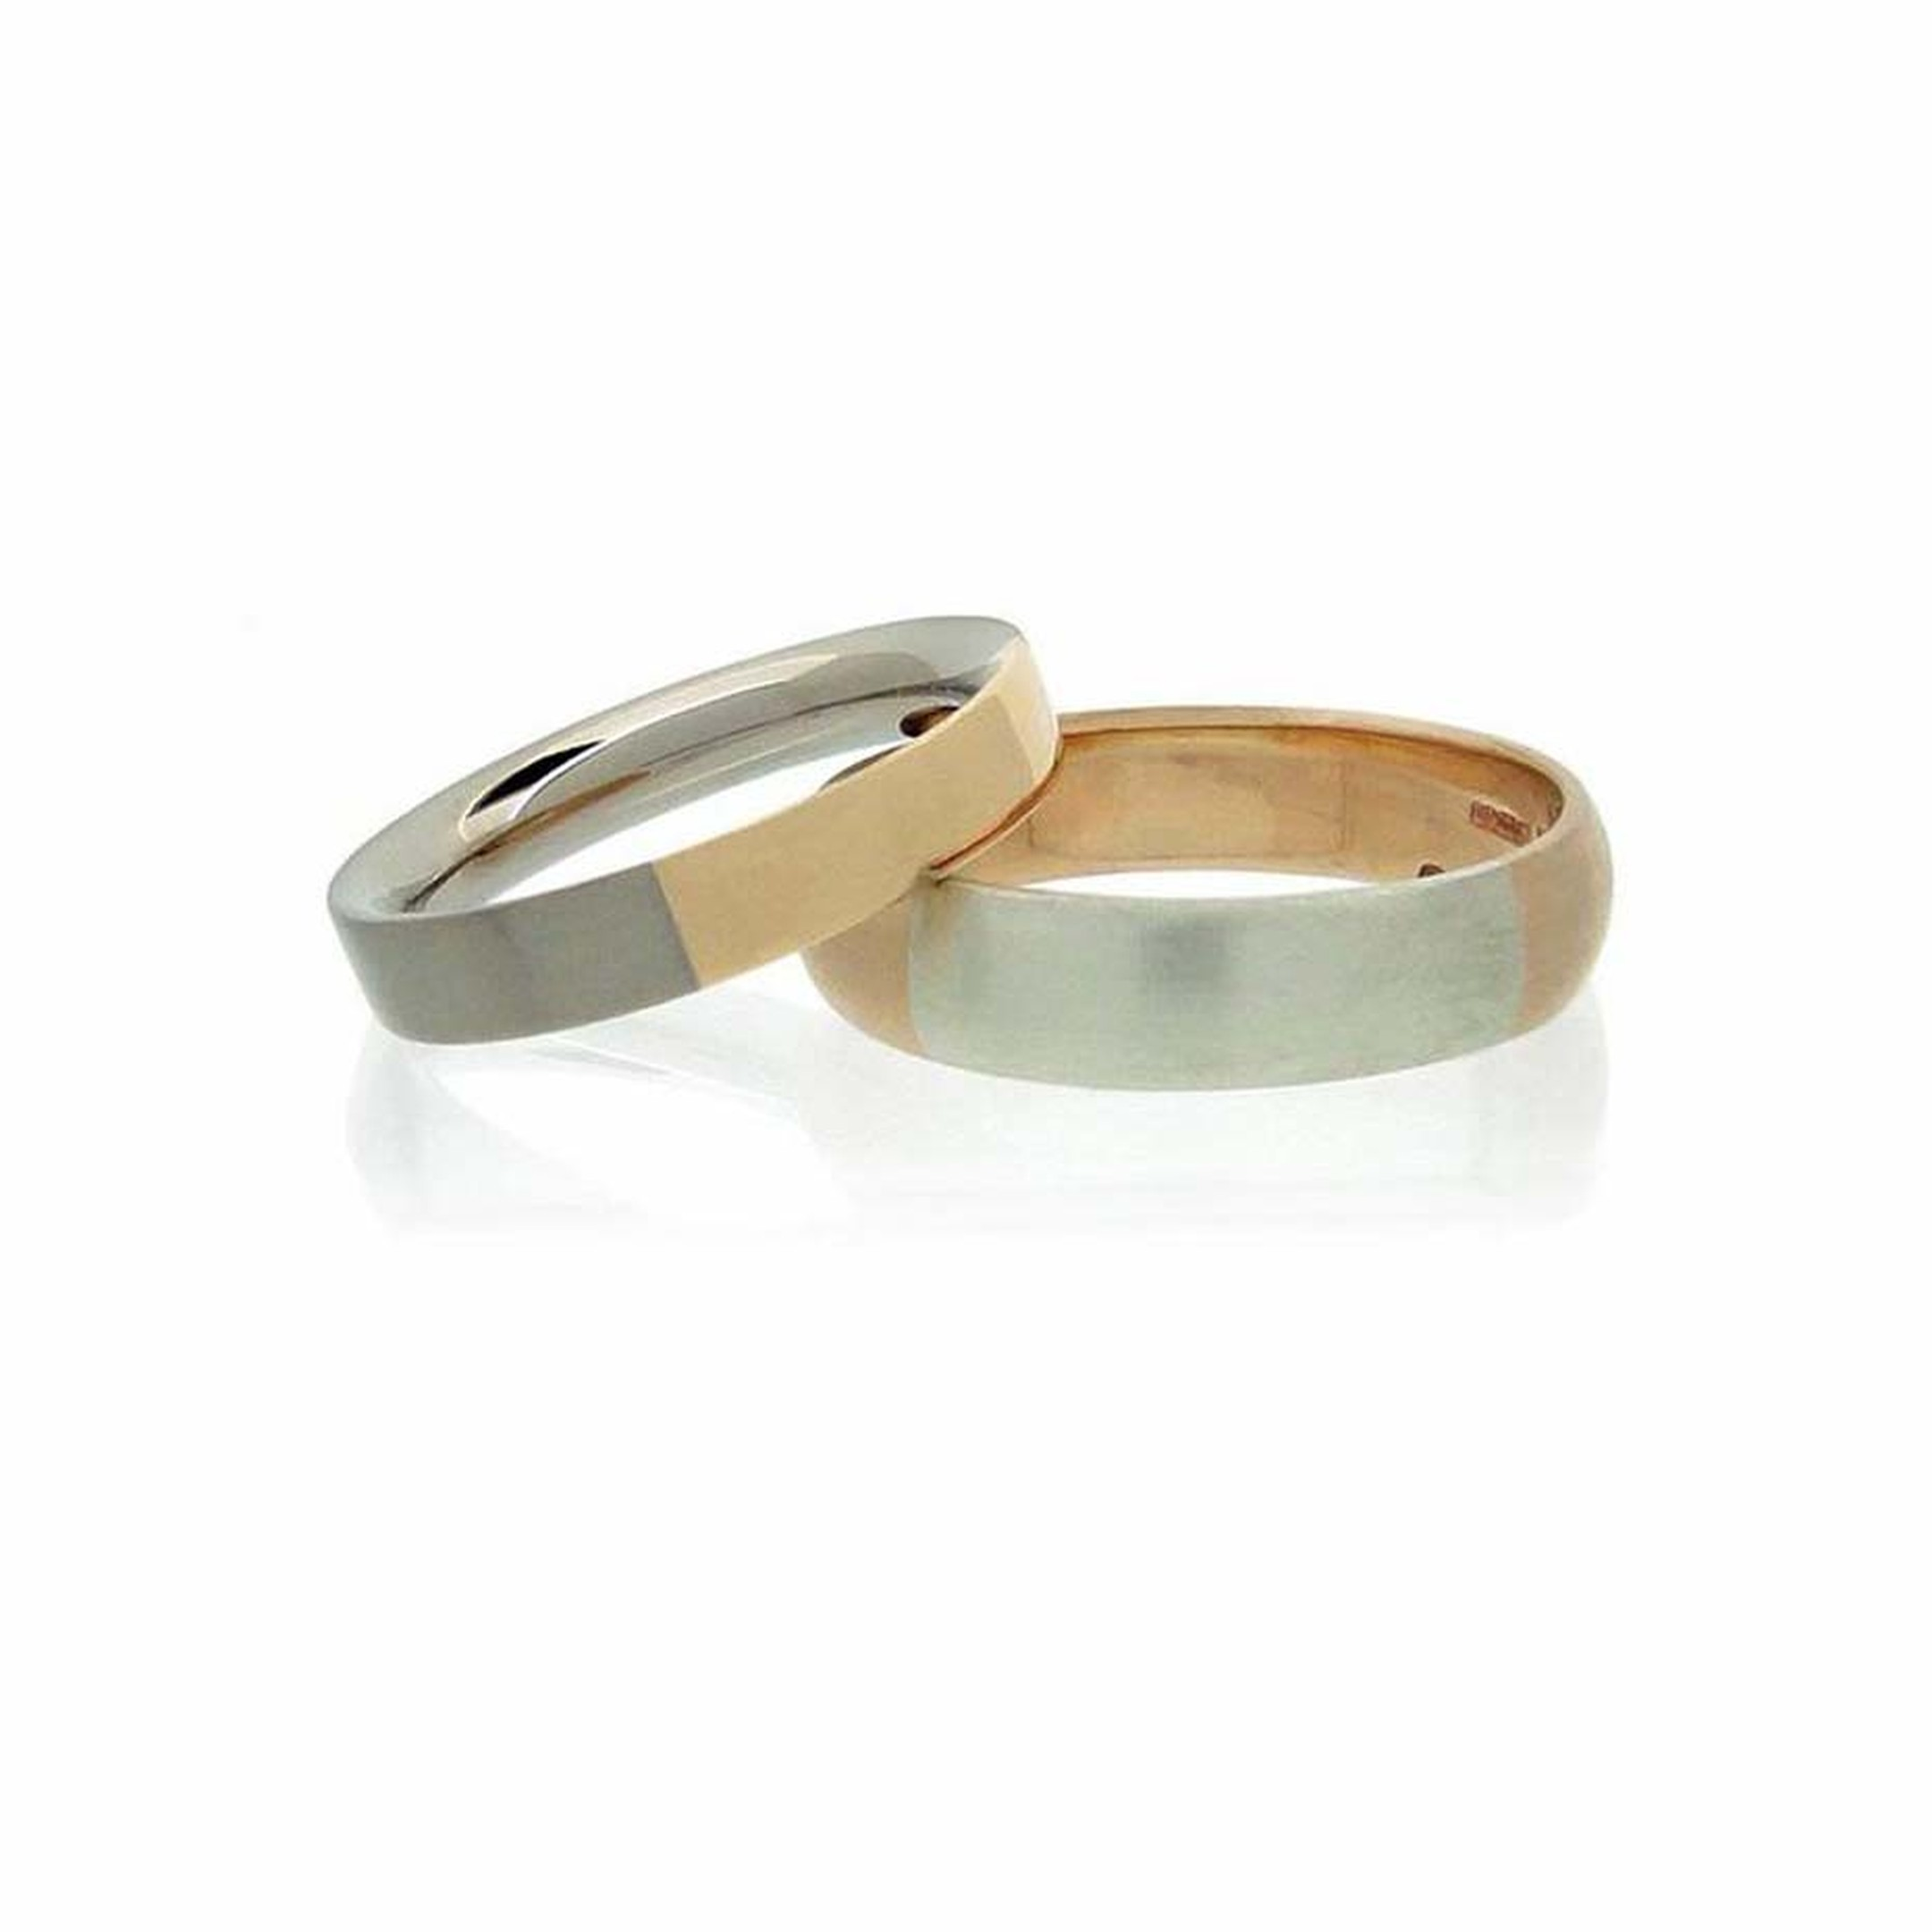 Amanda Li Hope ethical wedding bands in Fairtrade gold.